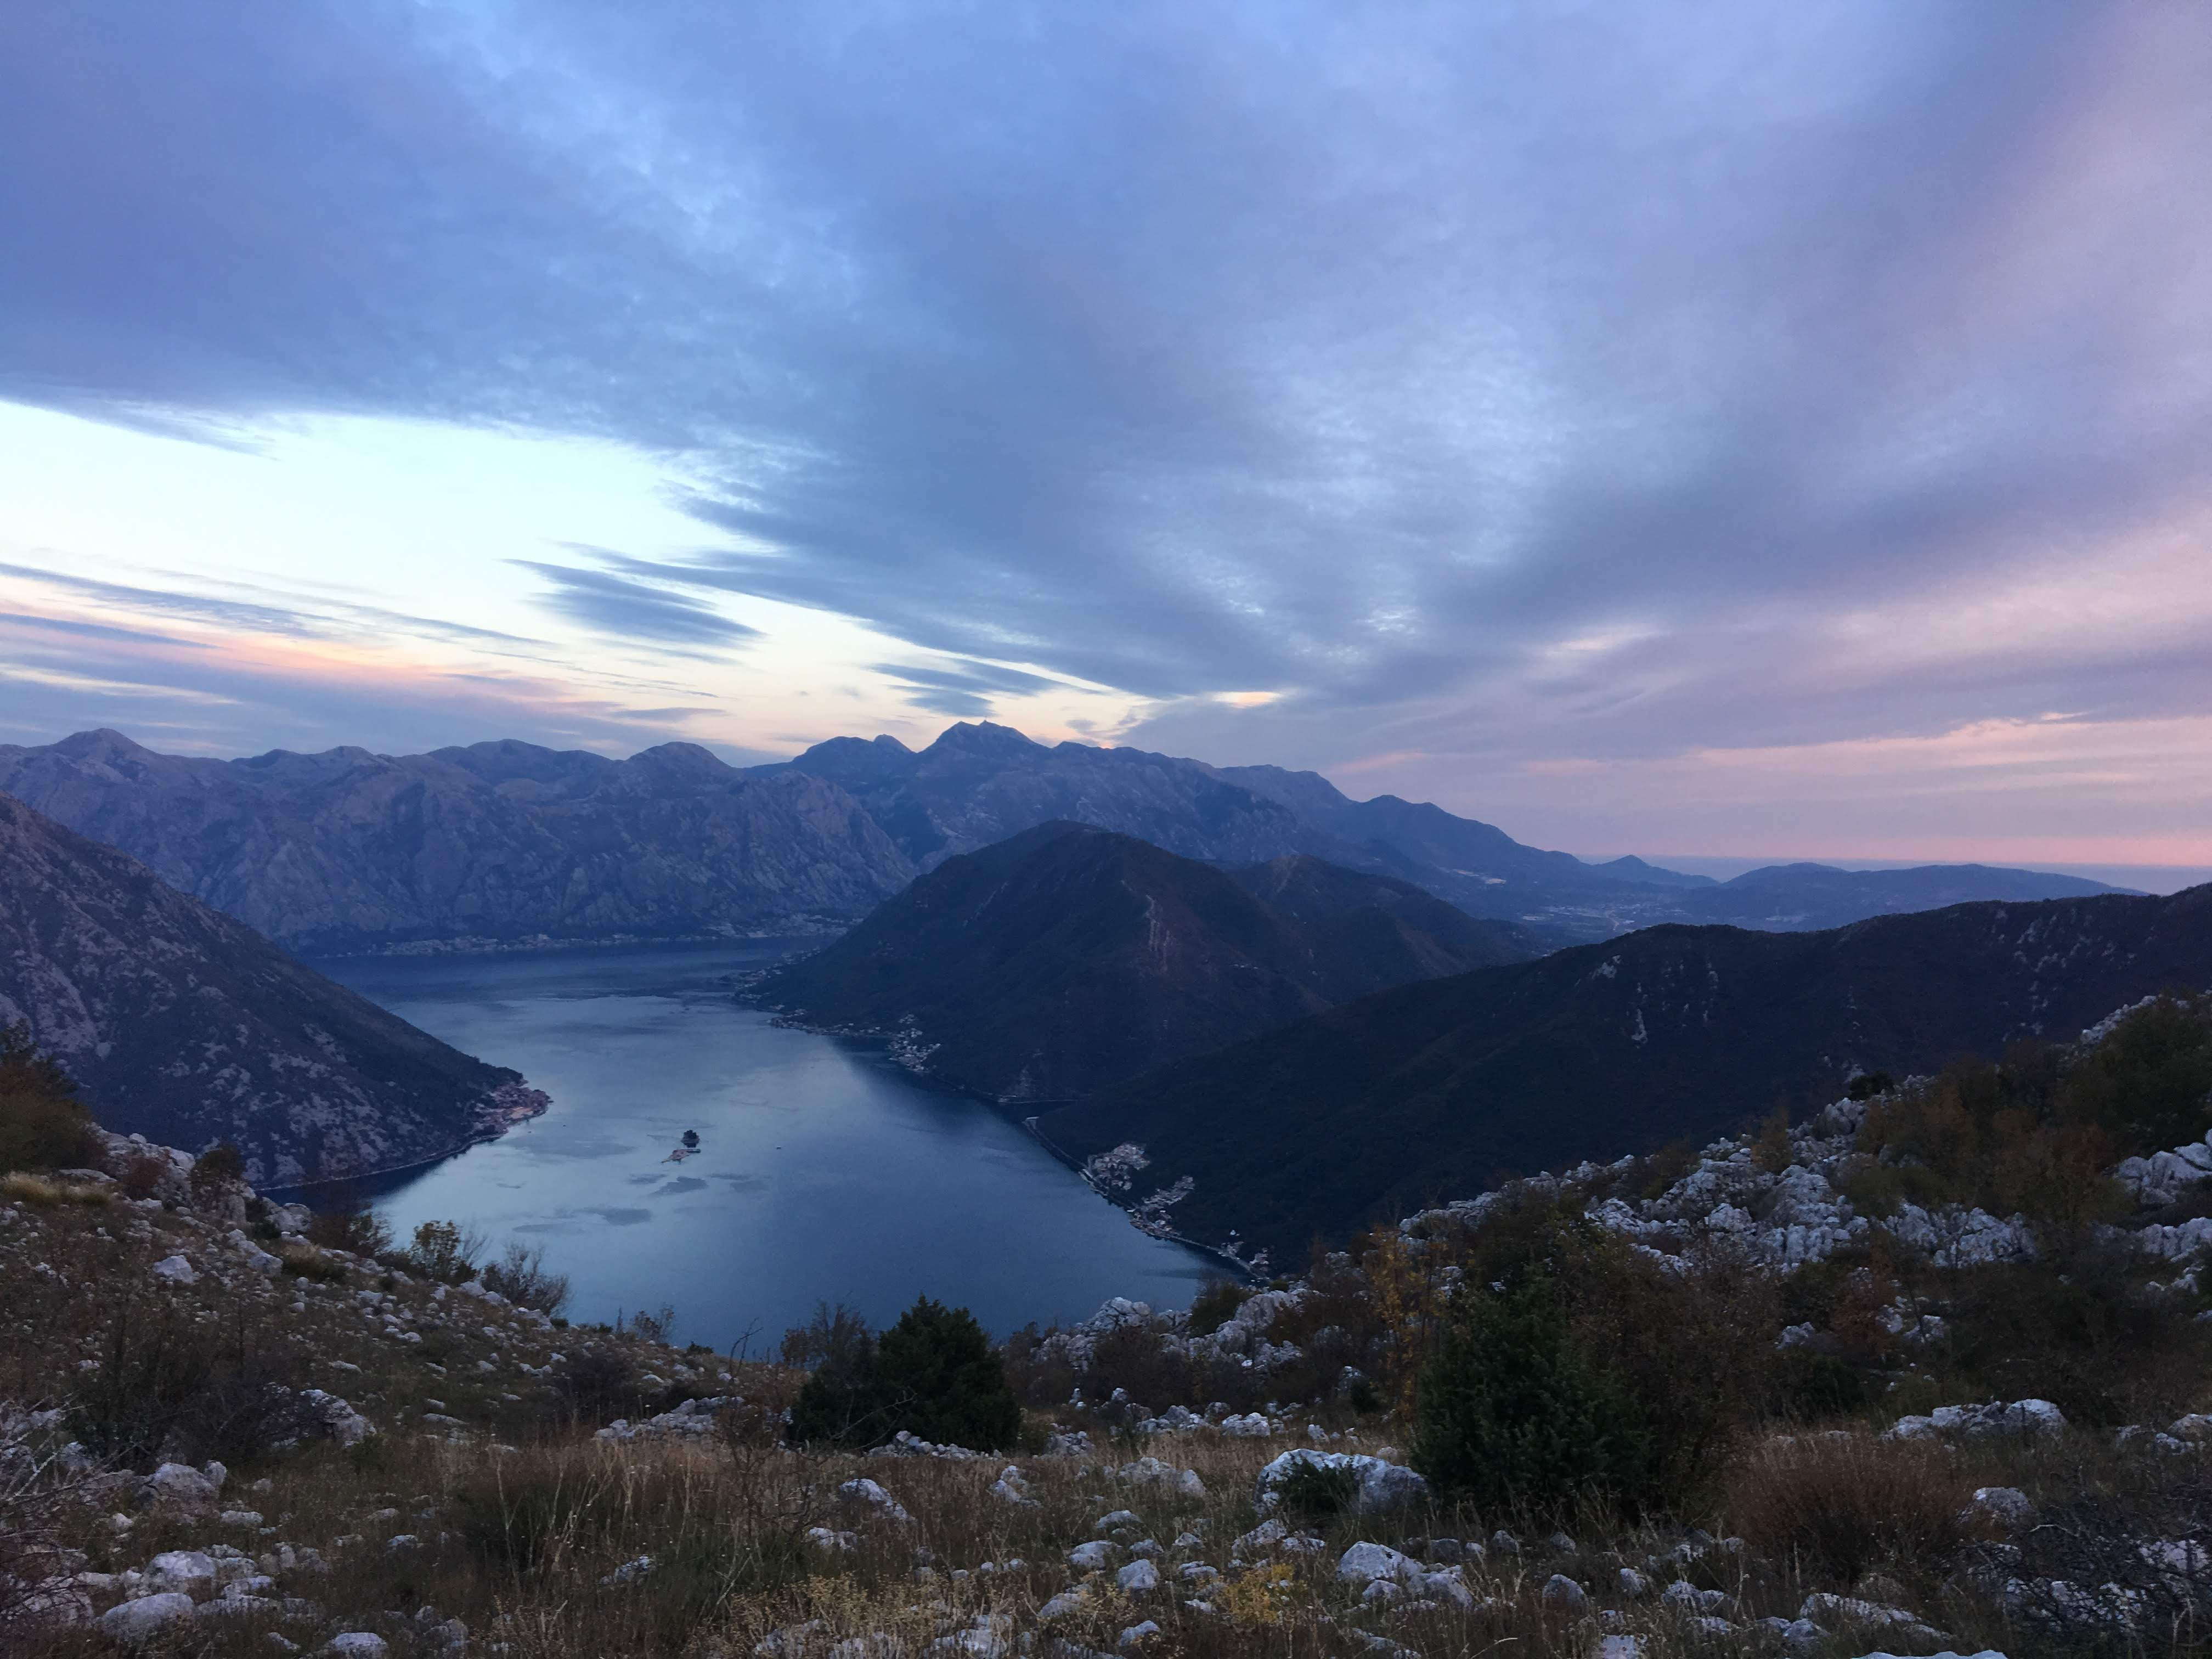 On the fringes of The Dinaric Alps in Montenegro, we'll explore the limestone mountains that overlook the inlet of the Adriatic Sea.